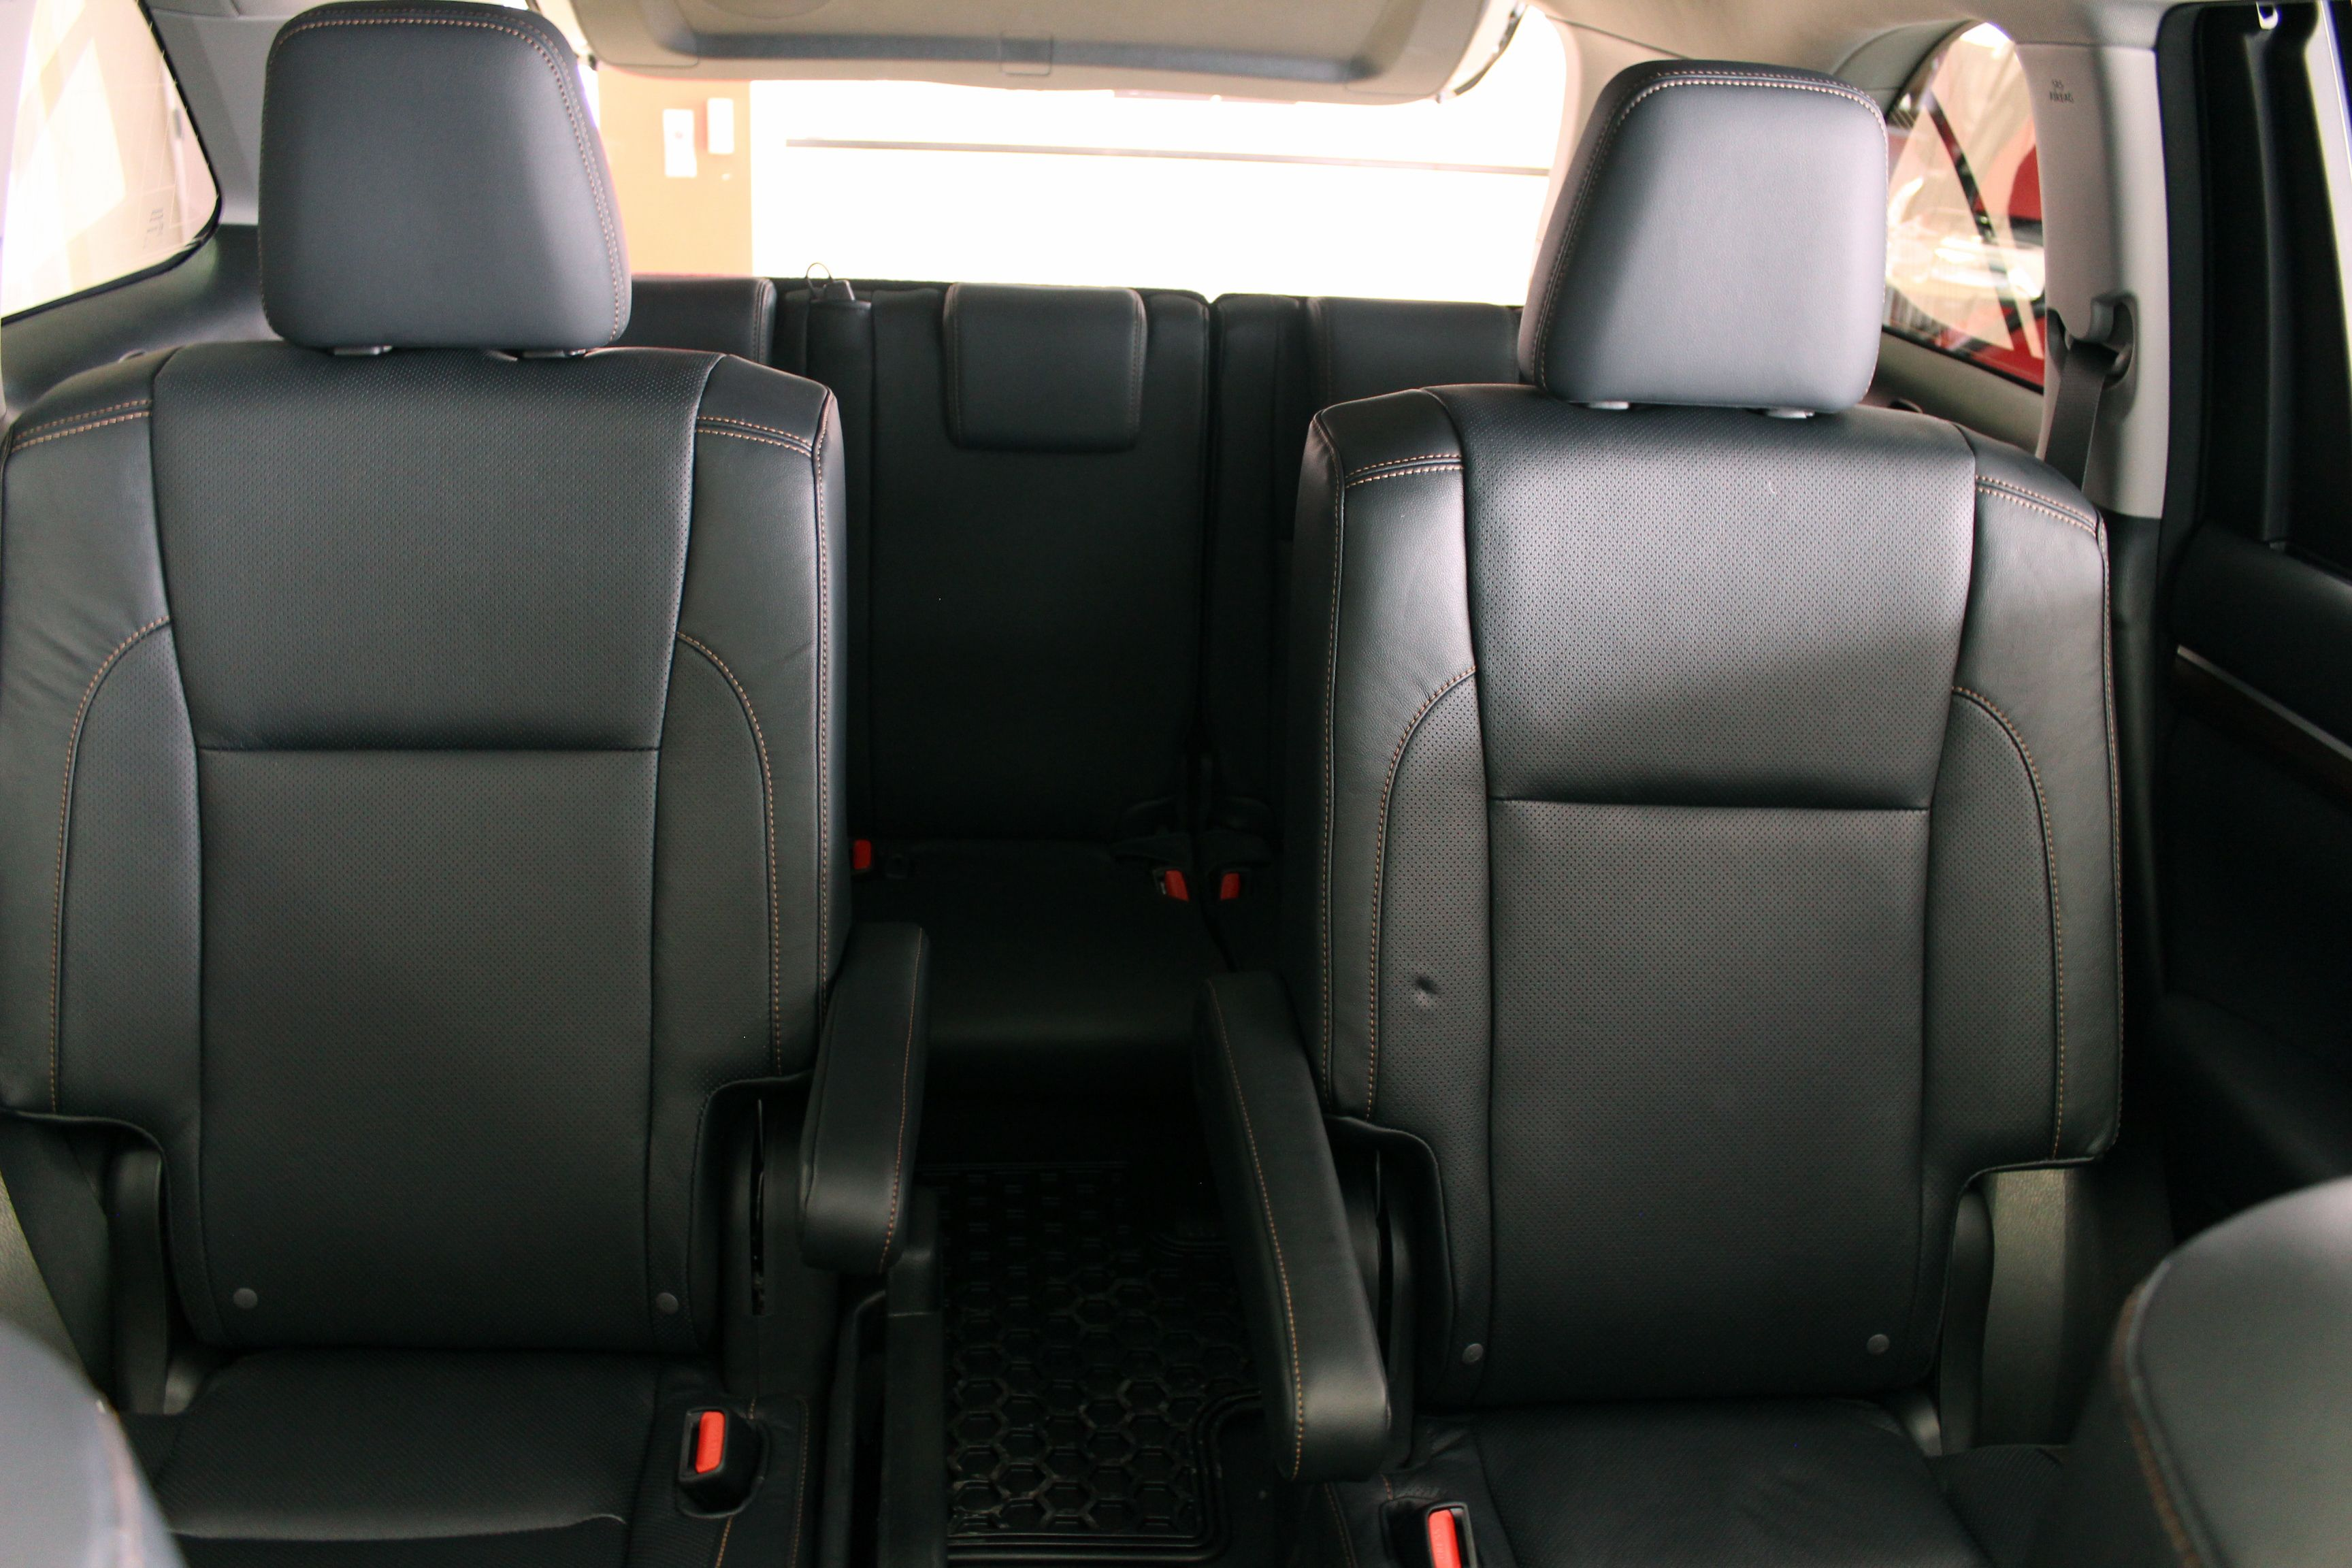 Toyota Sienna Captains Chairs Removal La Z Boy Chair Covers 2014 Highlander Limited Awd Second Row Captain